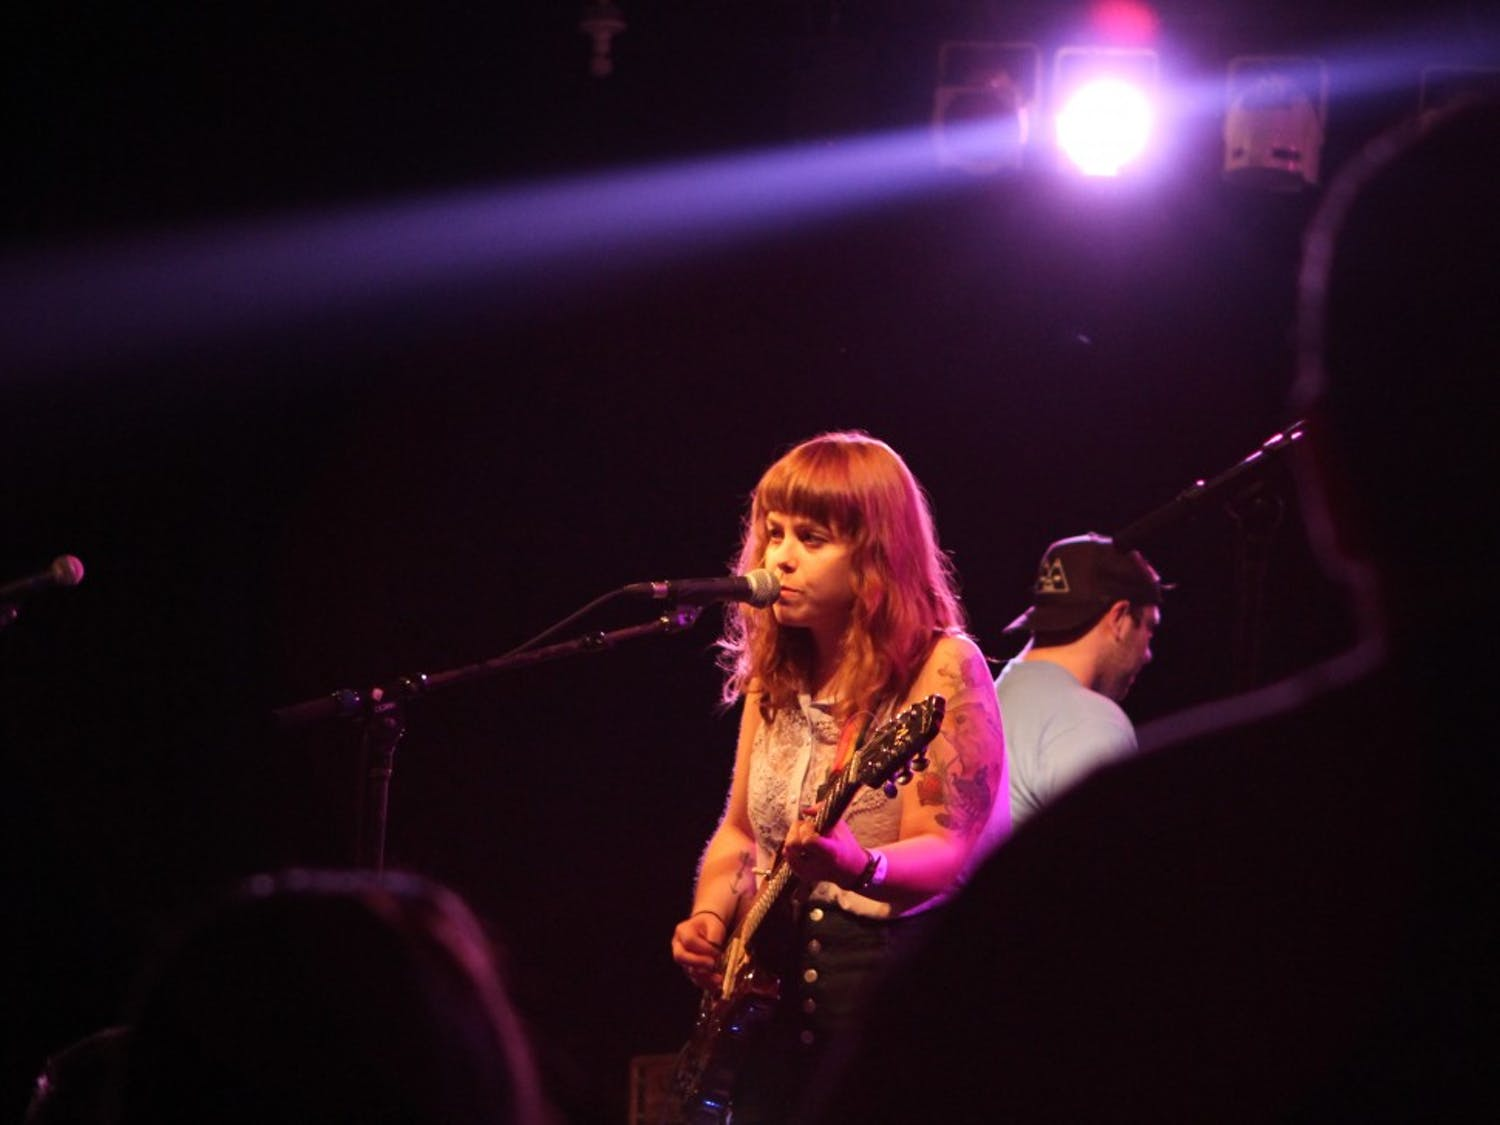 Genders perform at Cat's Cradle in Carrboro on October 30, 2013.